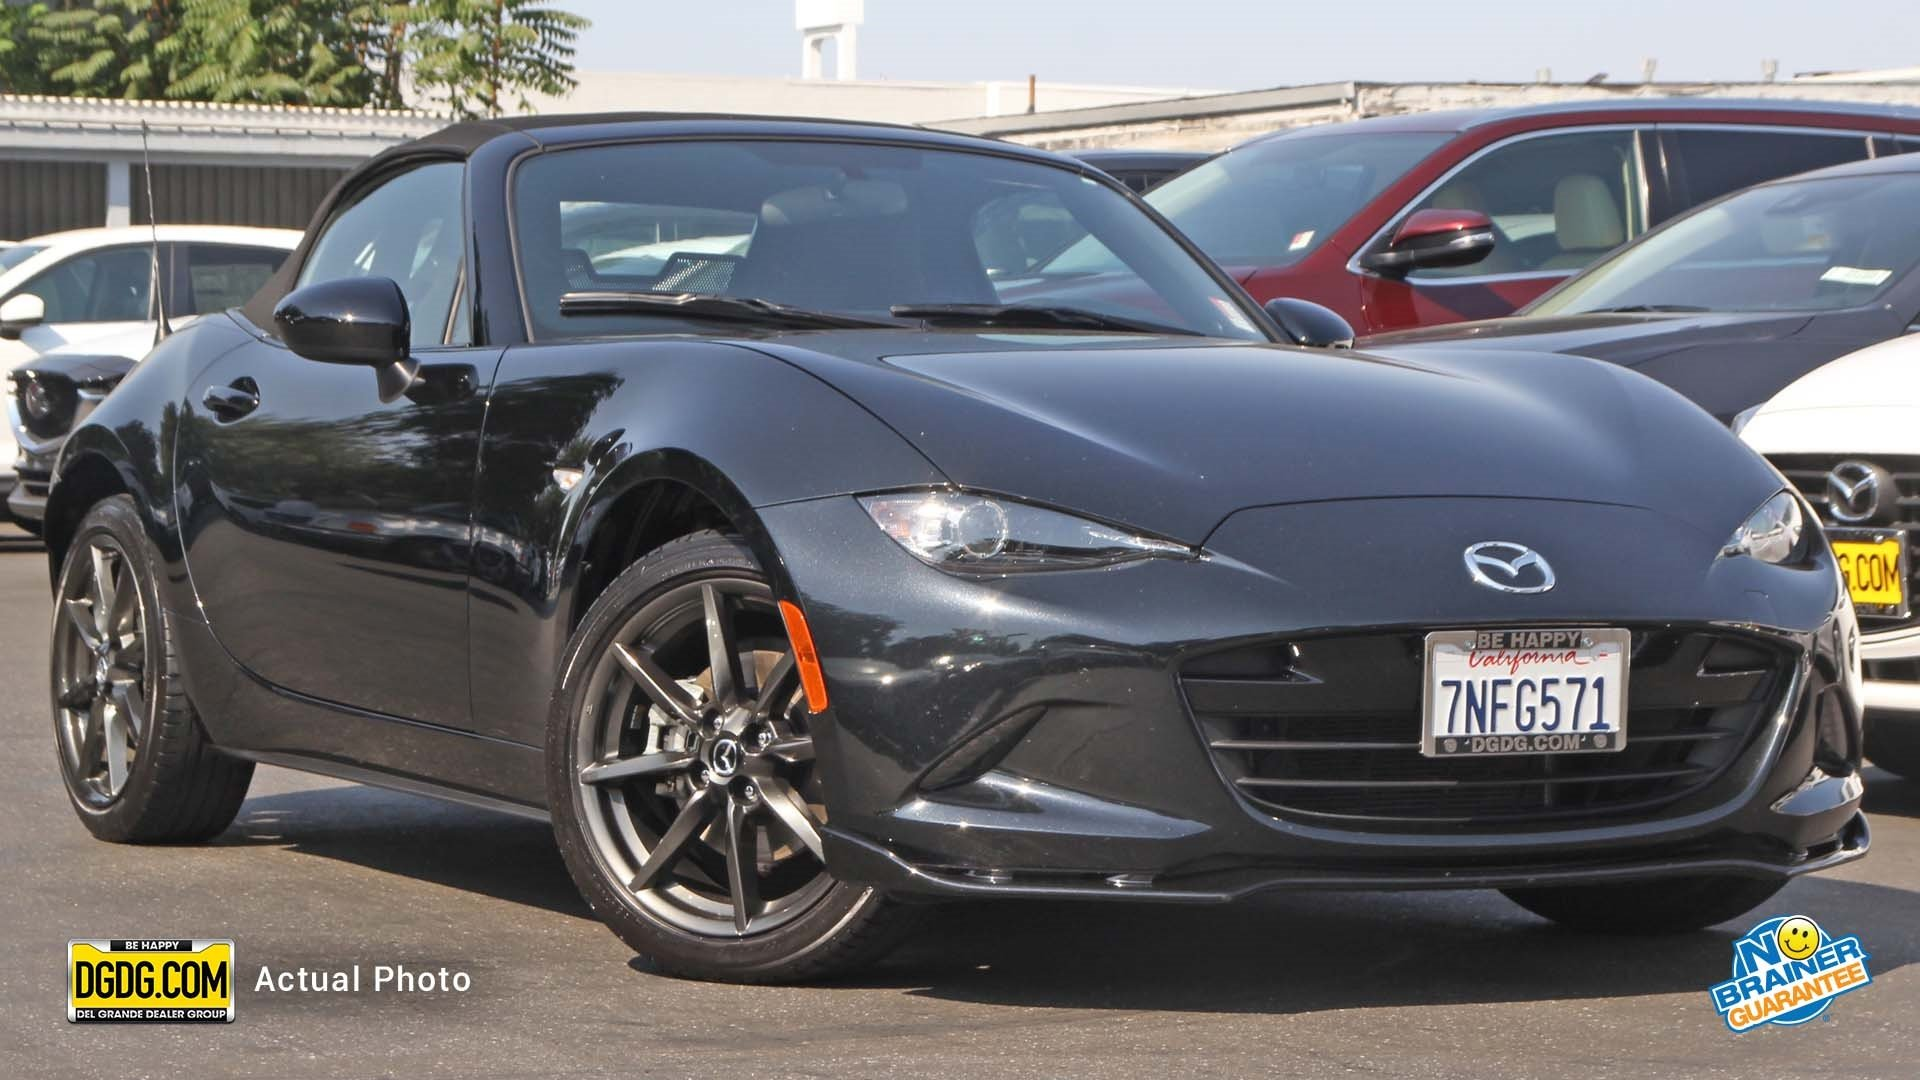 Certified Pre Owned 2016 Mazda MX 5 Miata Club Convertible in San